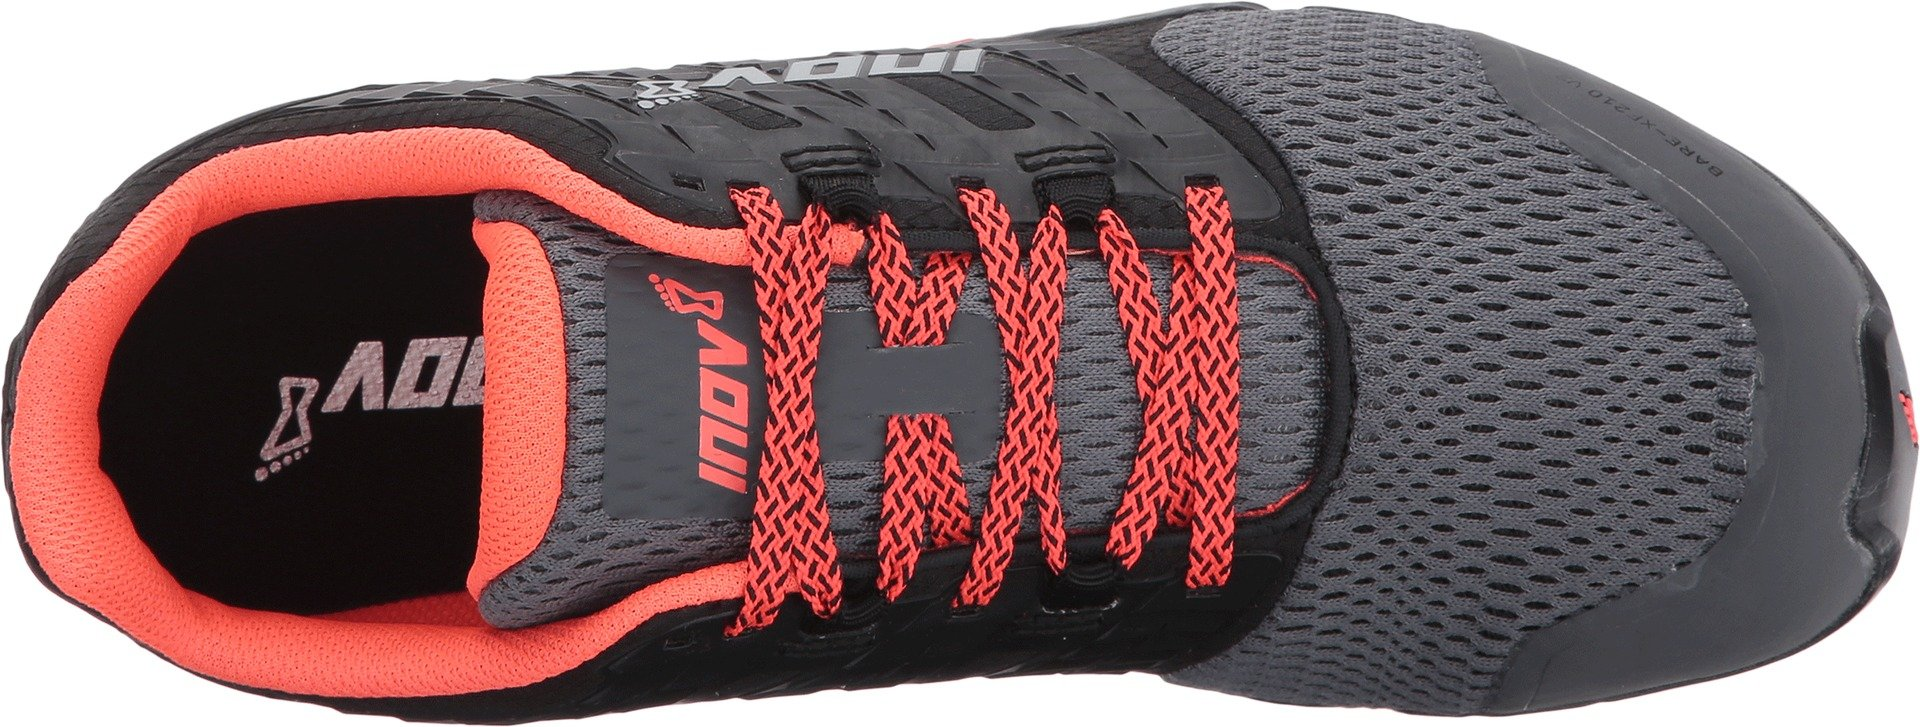 Inov-8 Women's Bare-XF 210 v2 (W) Cross Trainer, Grey/Black/Coral, 6 B US by Inov-8 (Image #2)